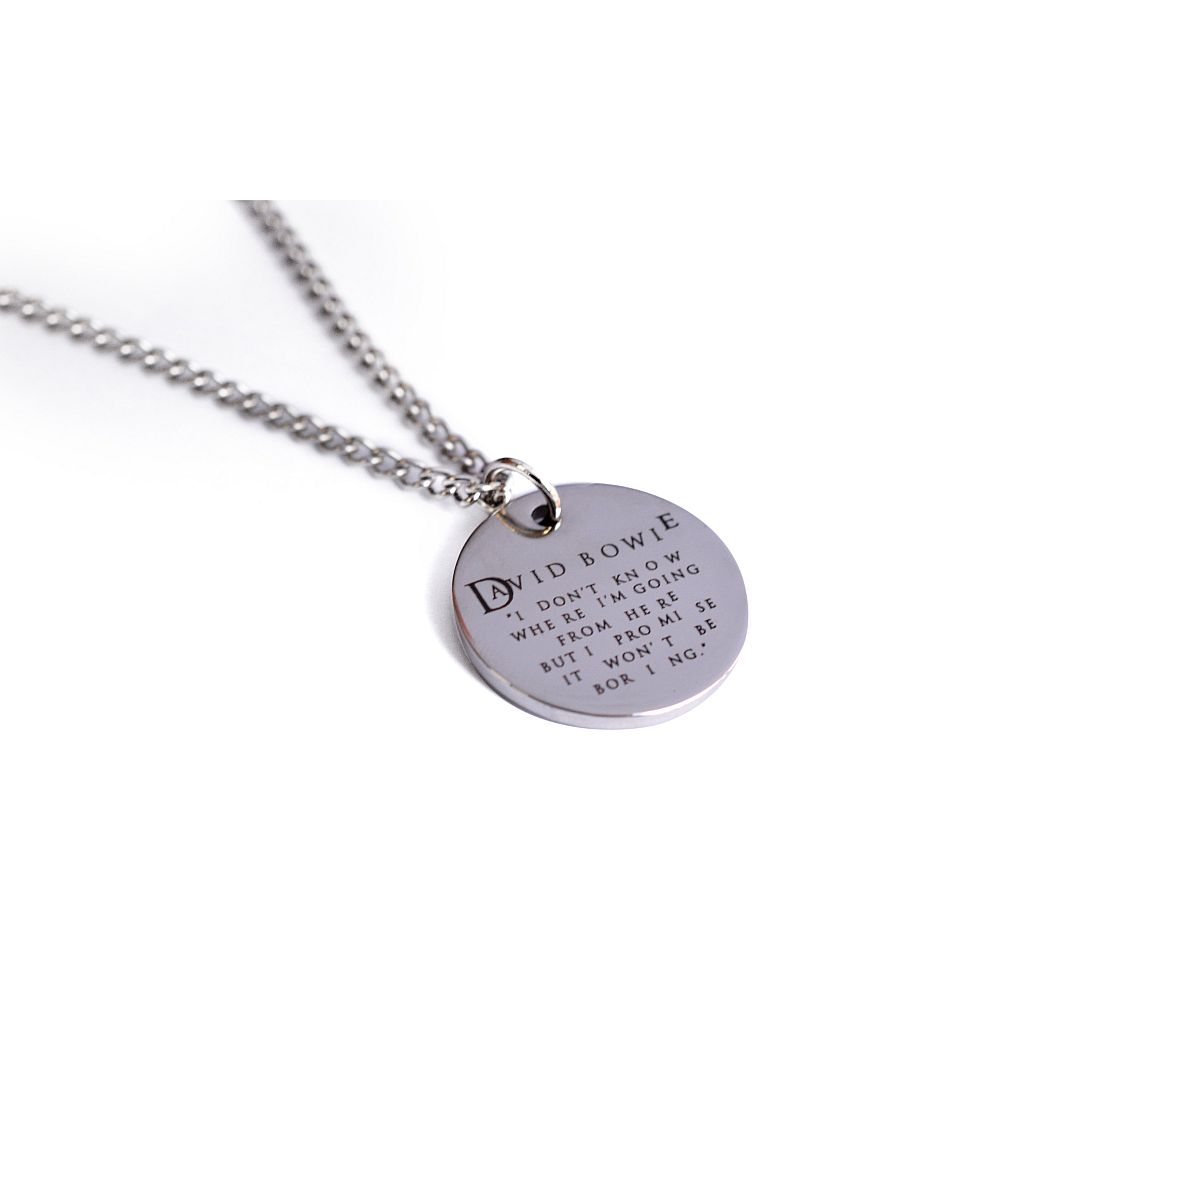 "David Bowie ""I Don't Know Where I'm Going From Here"" Quote Necklace"